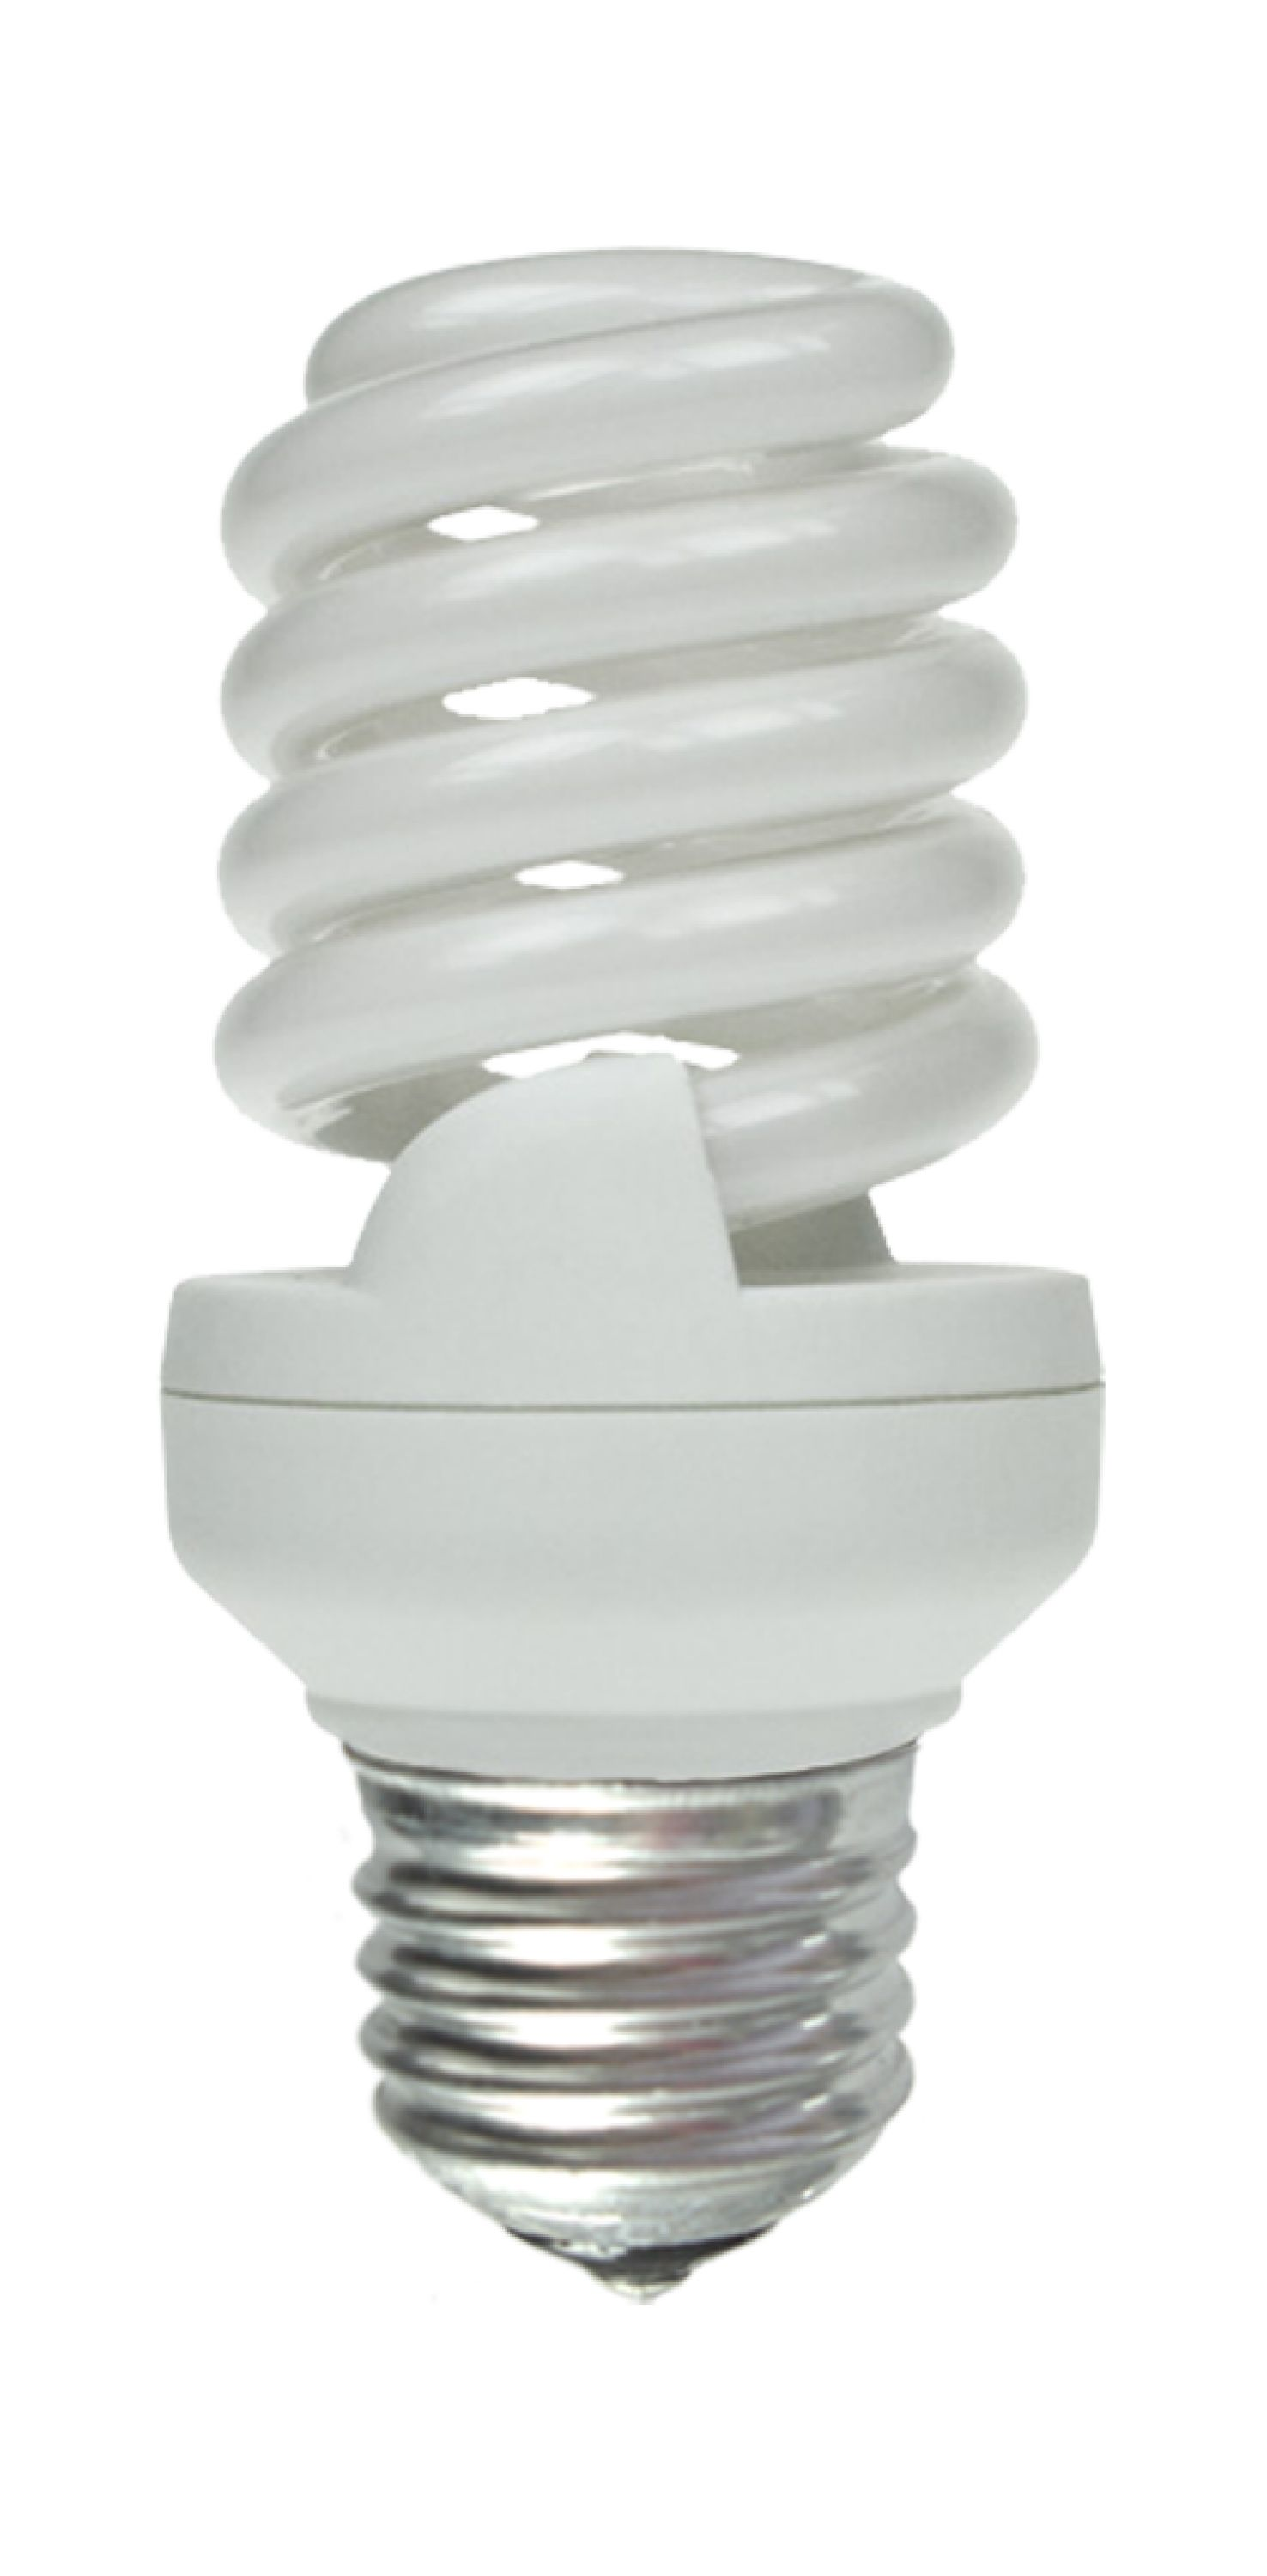 White 20A double pole switch (DP, 20 Amp) - £0.36